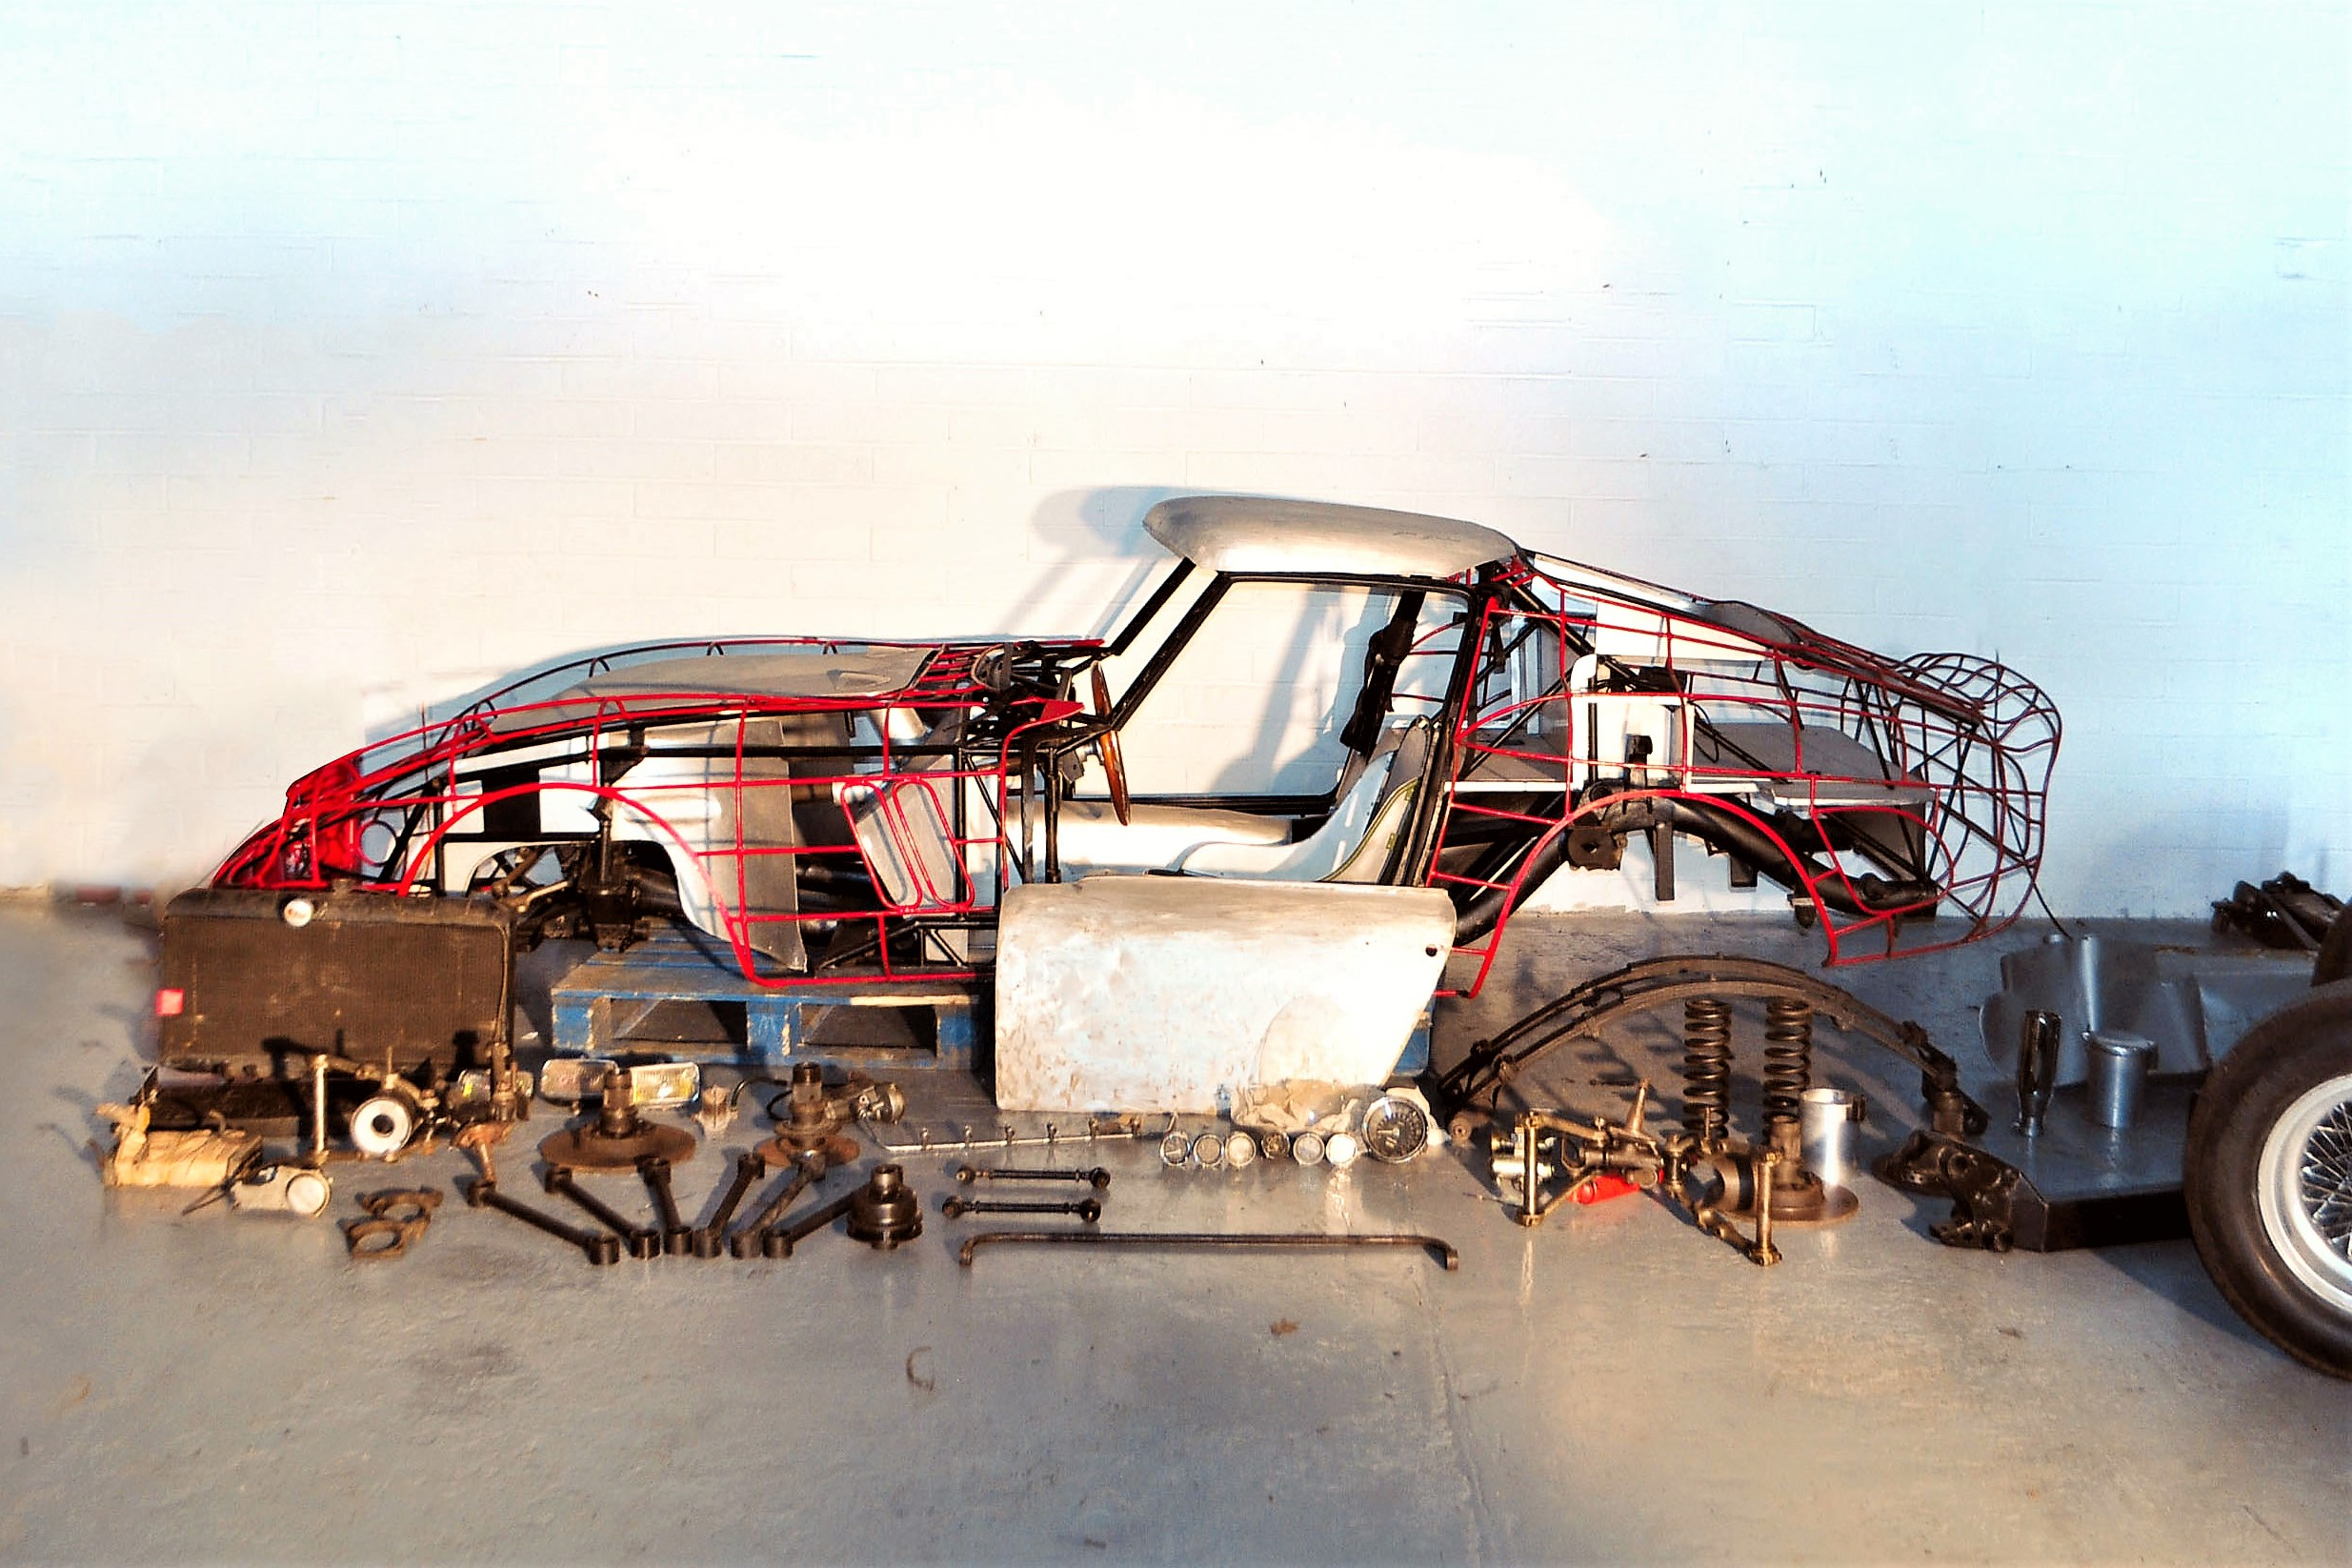 Many crucial Ferrari GTO parts are ready for the handy owner to build a complete one | Coys